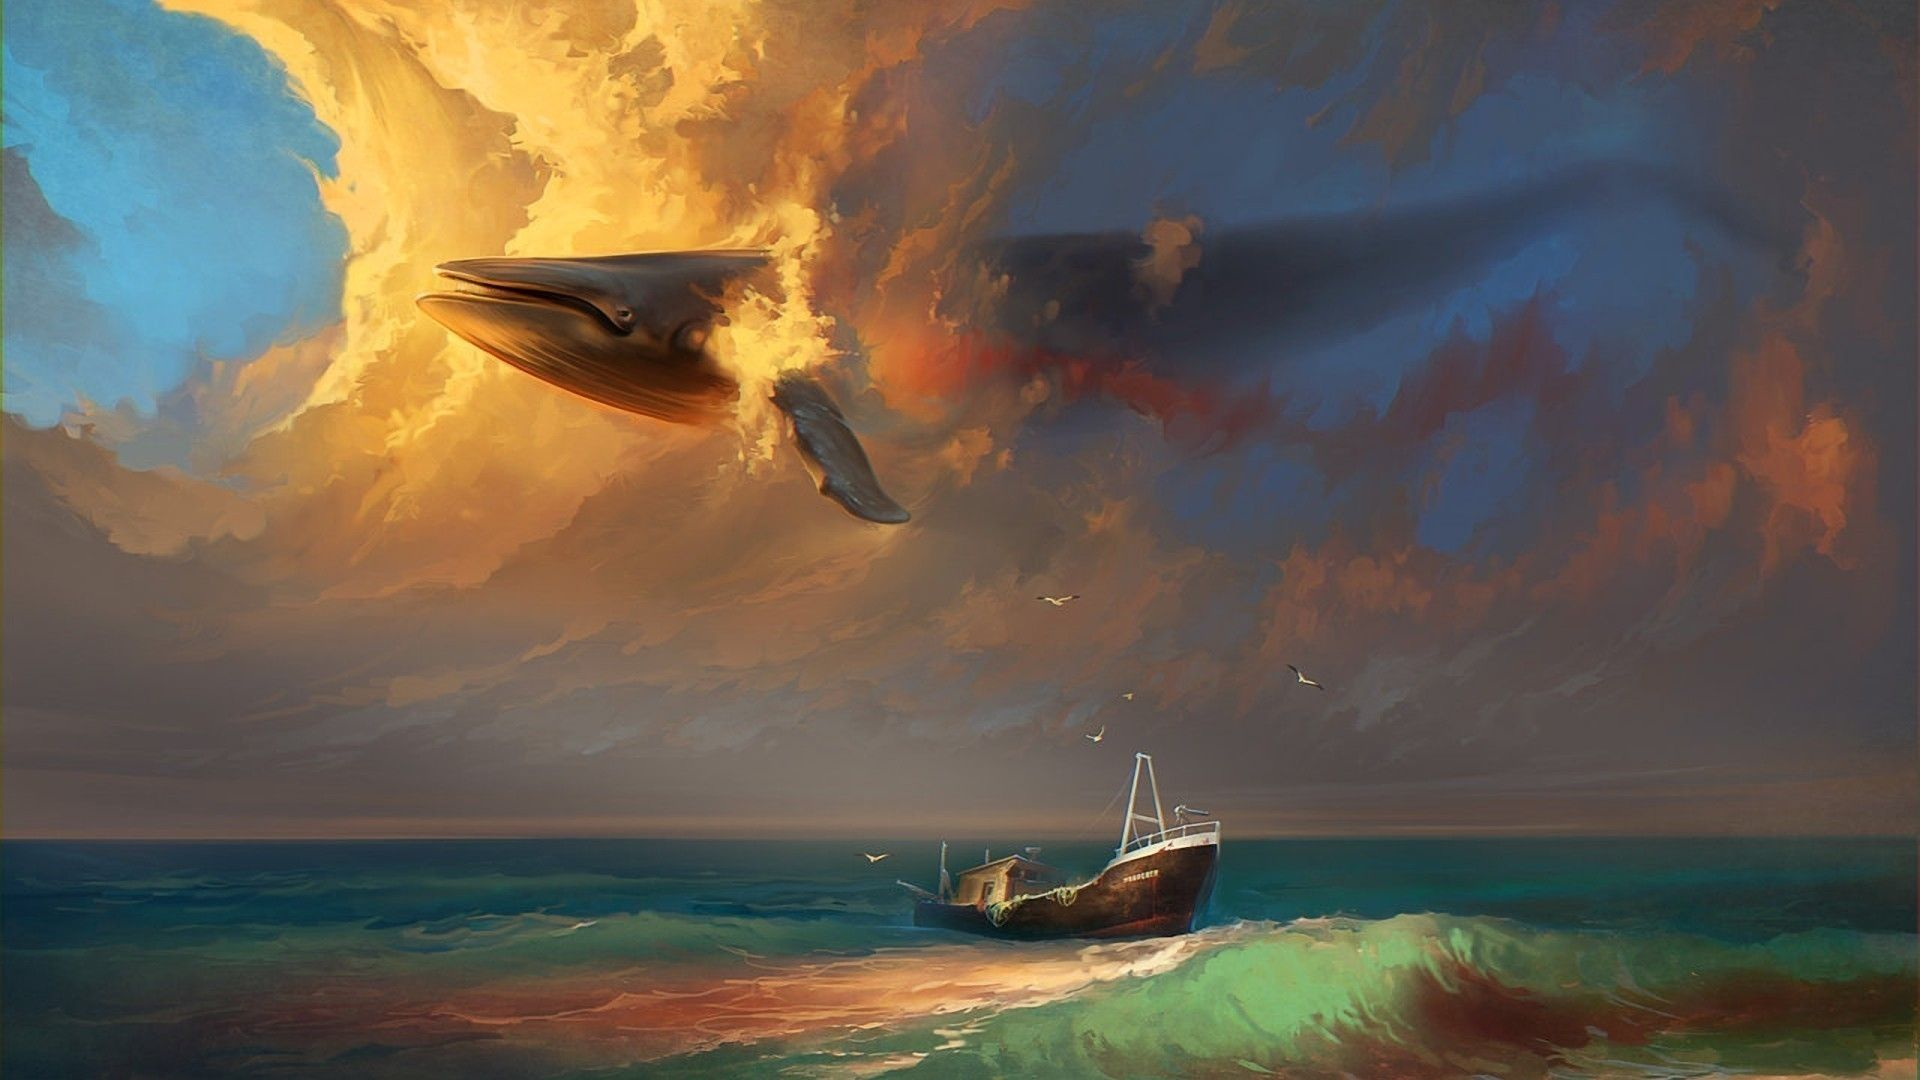 Download Wallpapers Download 1920x1080 Sunset Clouds Flying Waves Ships Fantasy Art Artwork Skies Whale Sea 1920x108 Digital Painting Whale Art Cloud Painting